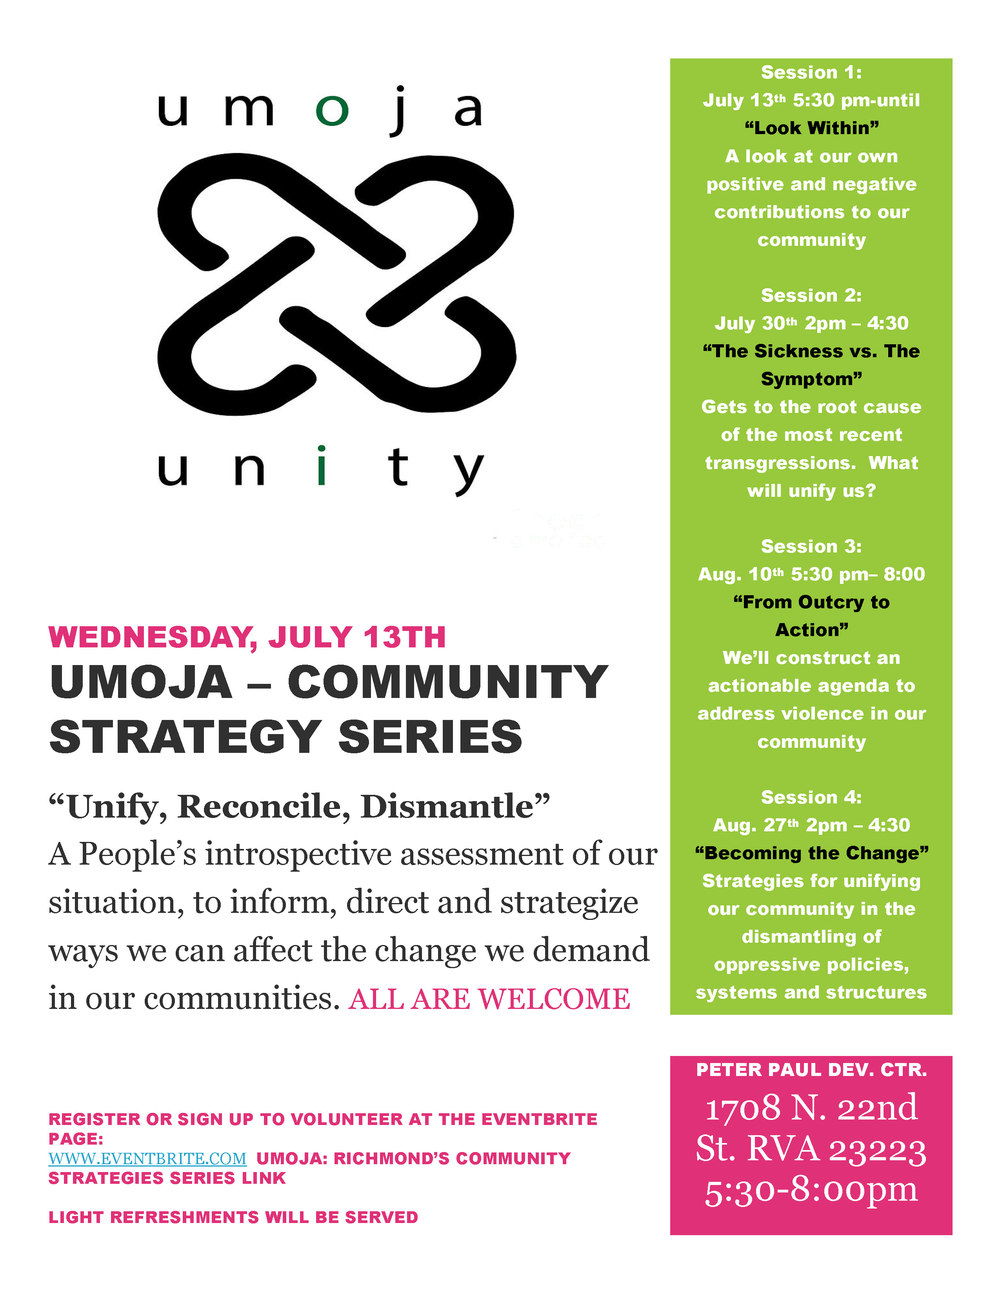 Click here for the UMOJA EVENT FLYER